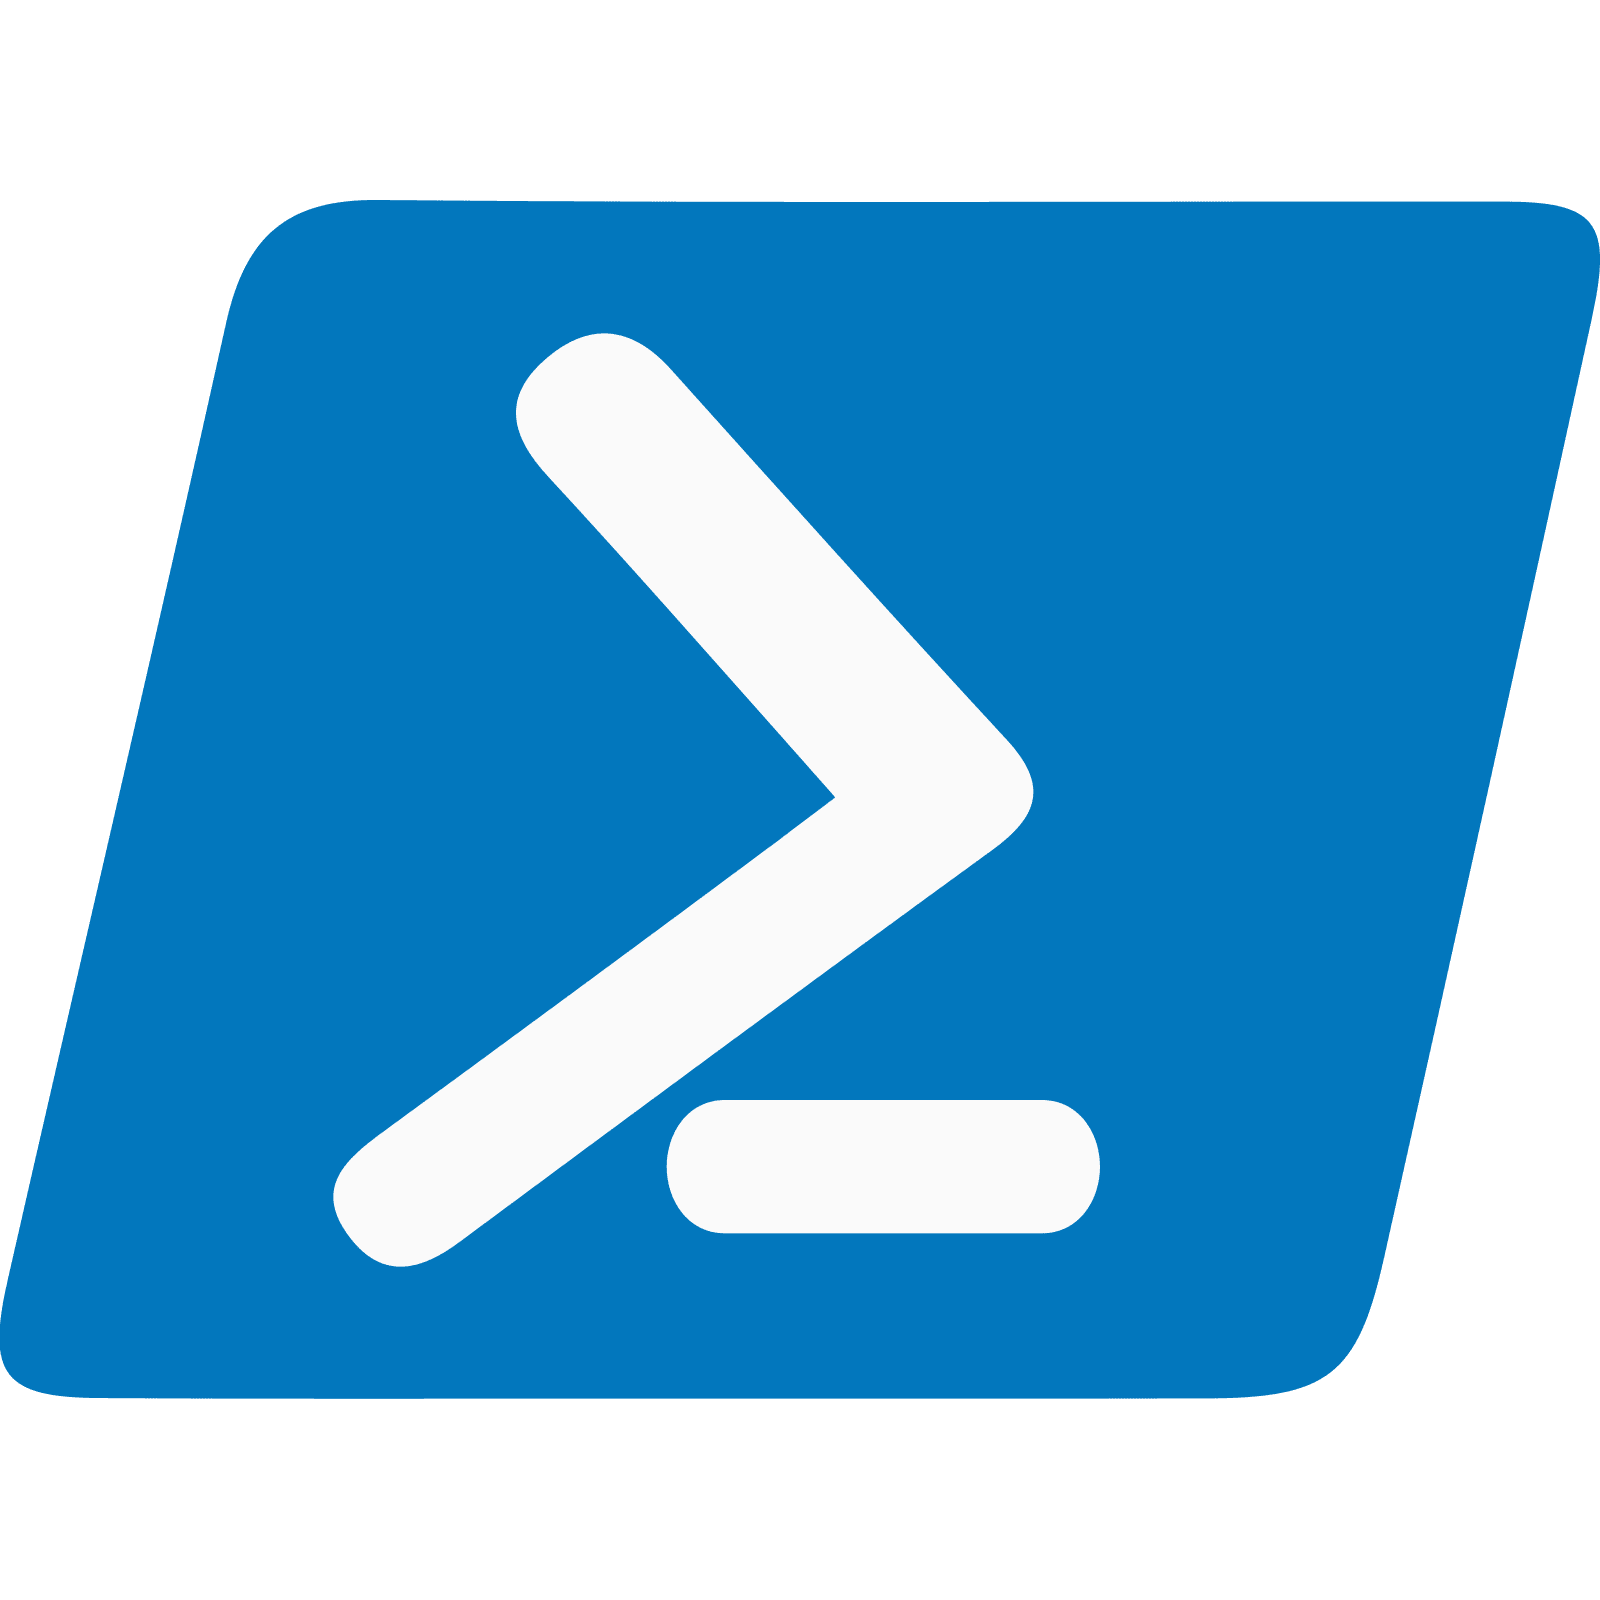 Deleting old files with Powershell